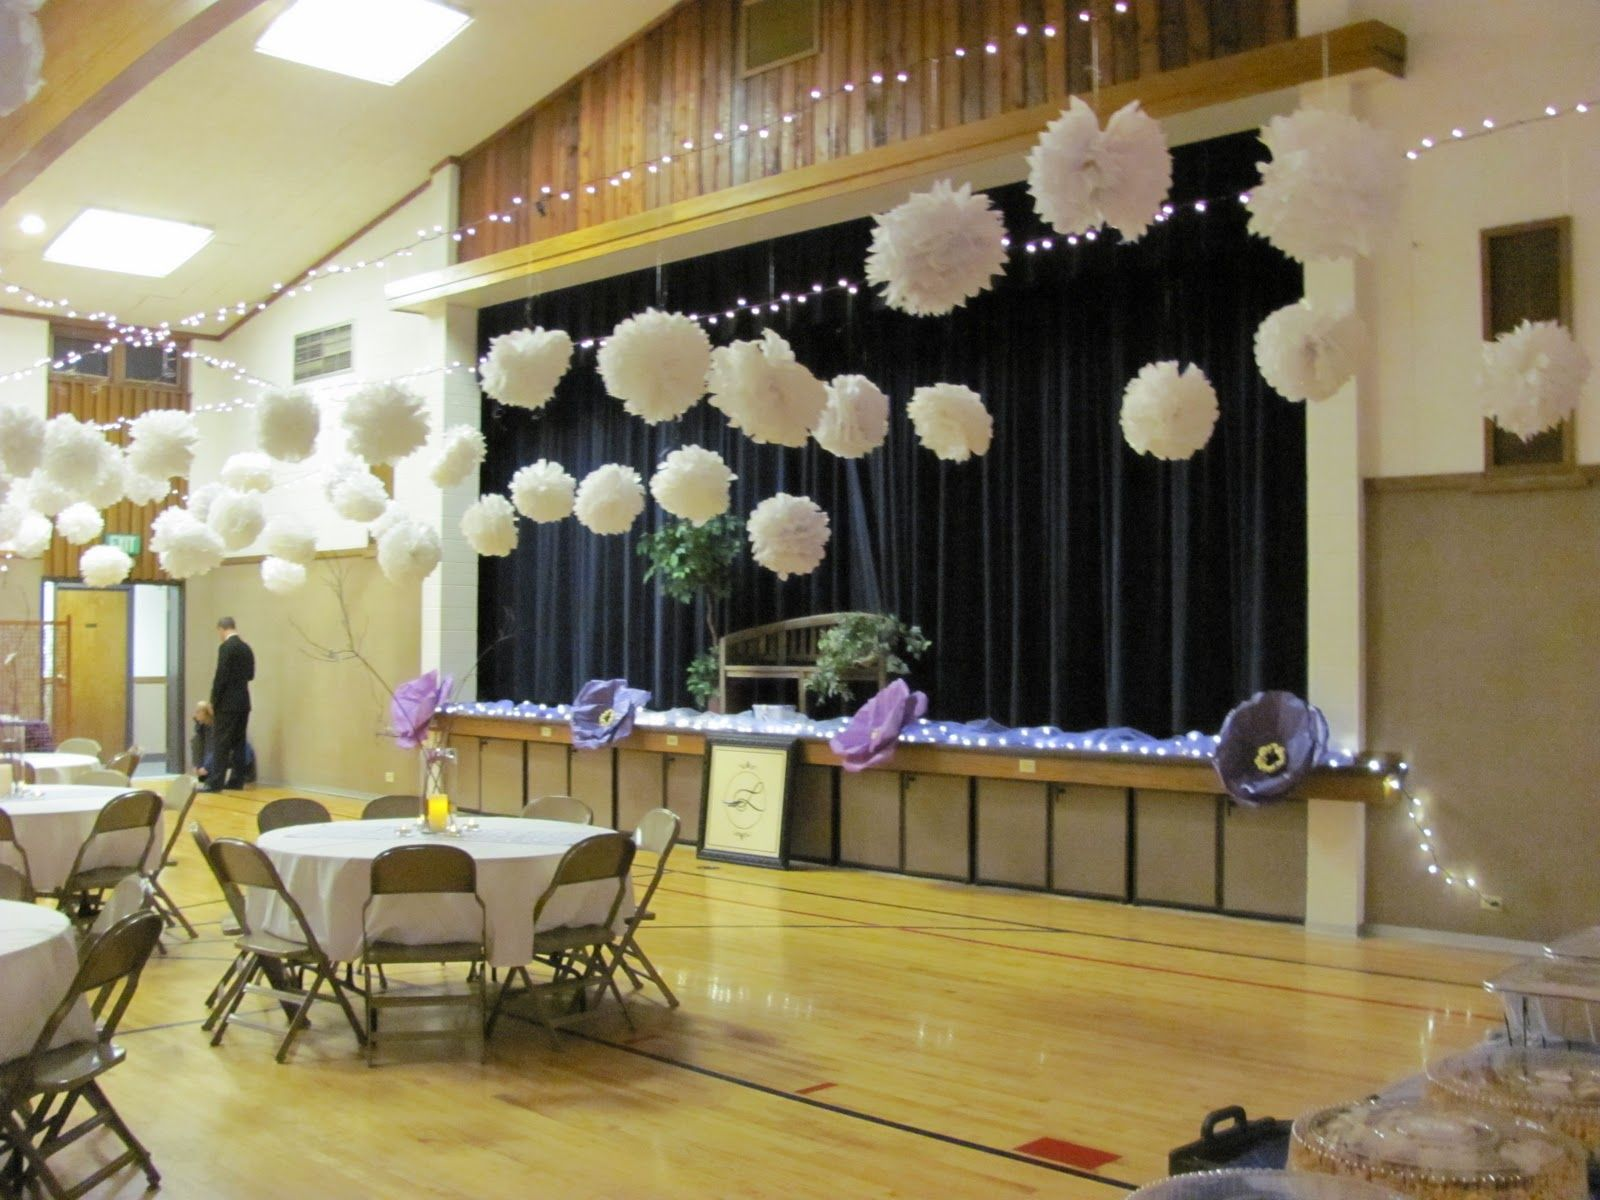 How to decorate a gym for a wedding google search wedding ideas how to decorate a gym for a wedding google search junglespirit Choice Image